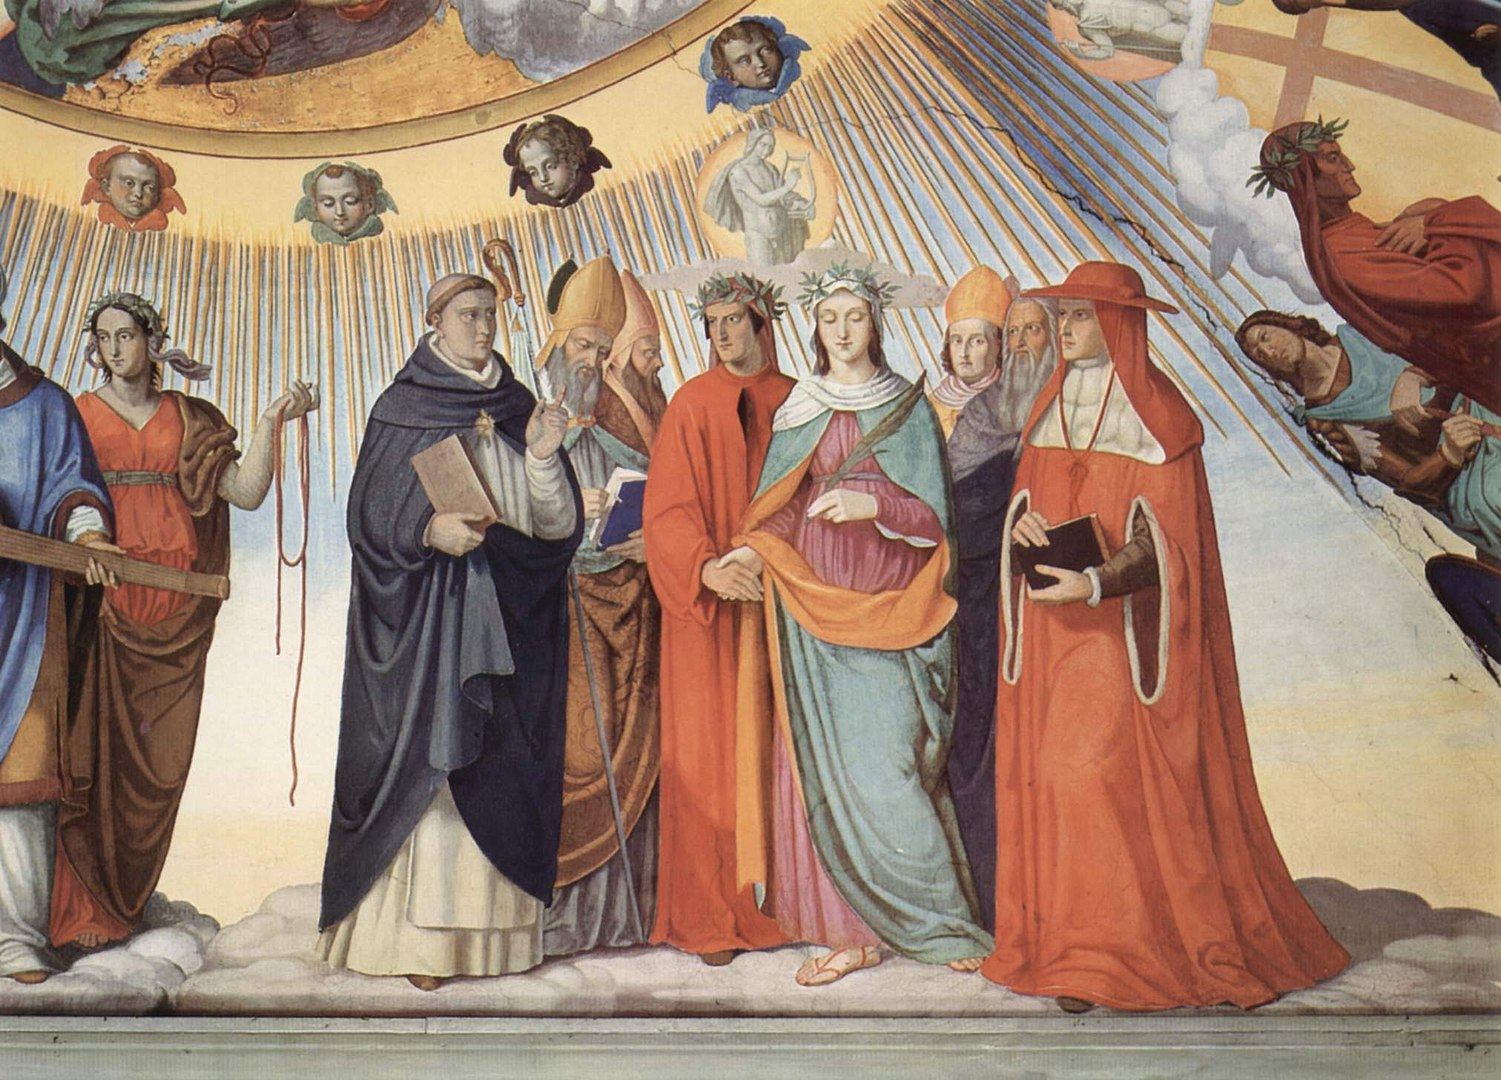 Dante and Beatrice speak to the teachers of wisdom Thomas Aquinas, Albertus Magnus, Peter Lombard and Sigier of Brabant in the Sphere of the Sun (fresco by Philipp Veit), Canto 10 (wikiCommons)